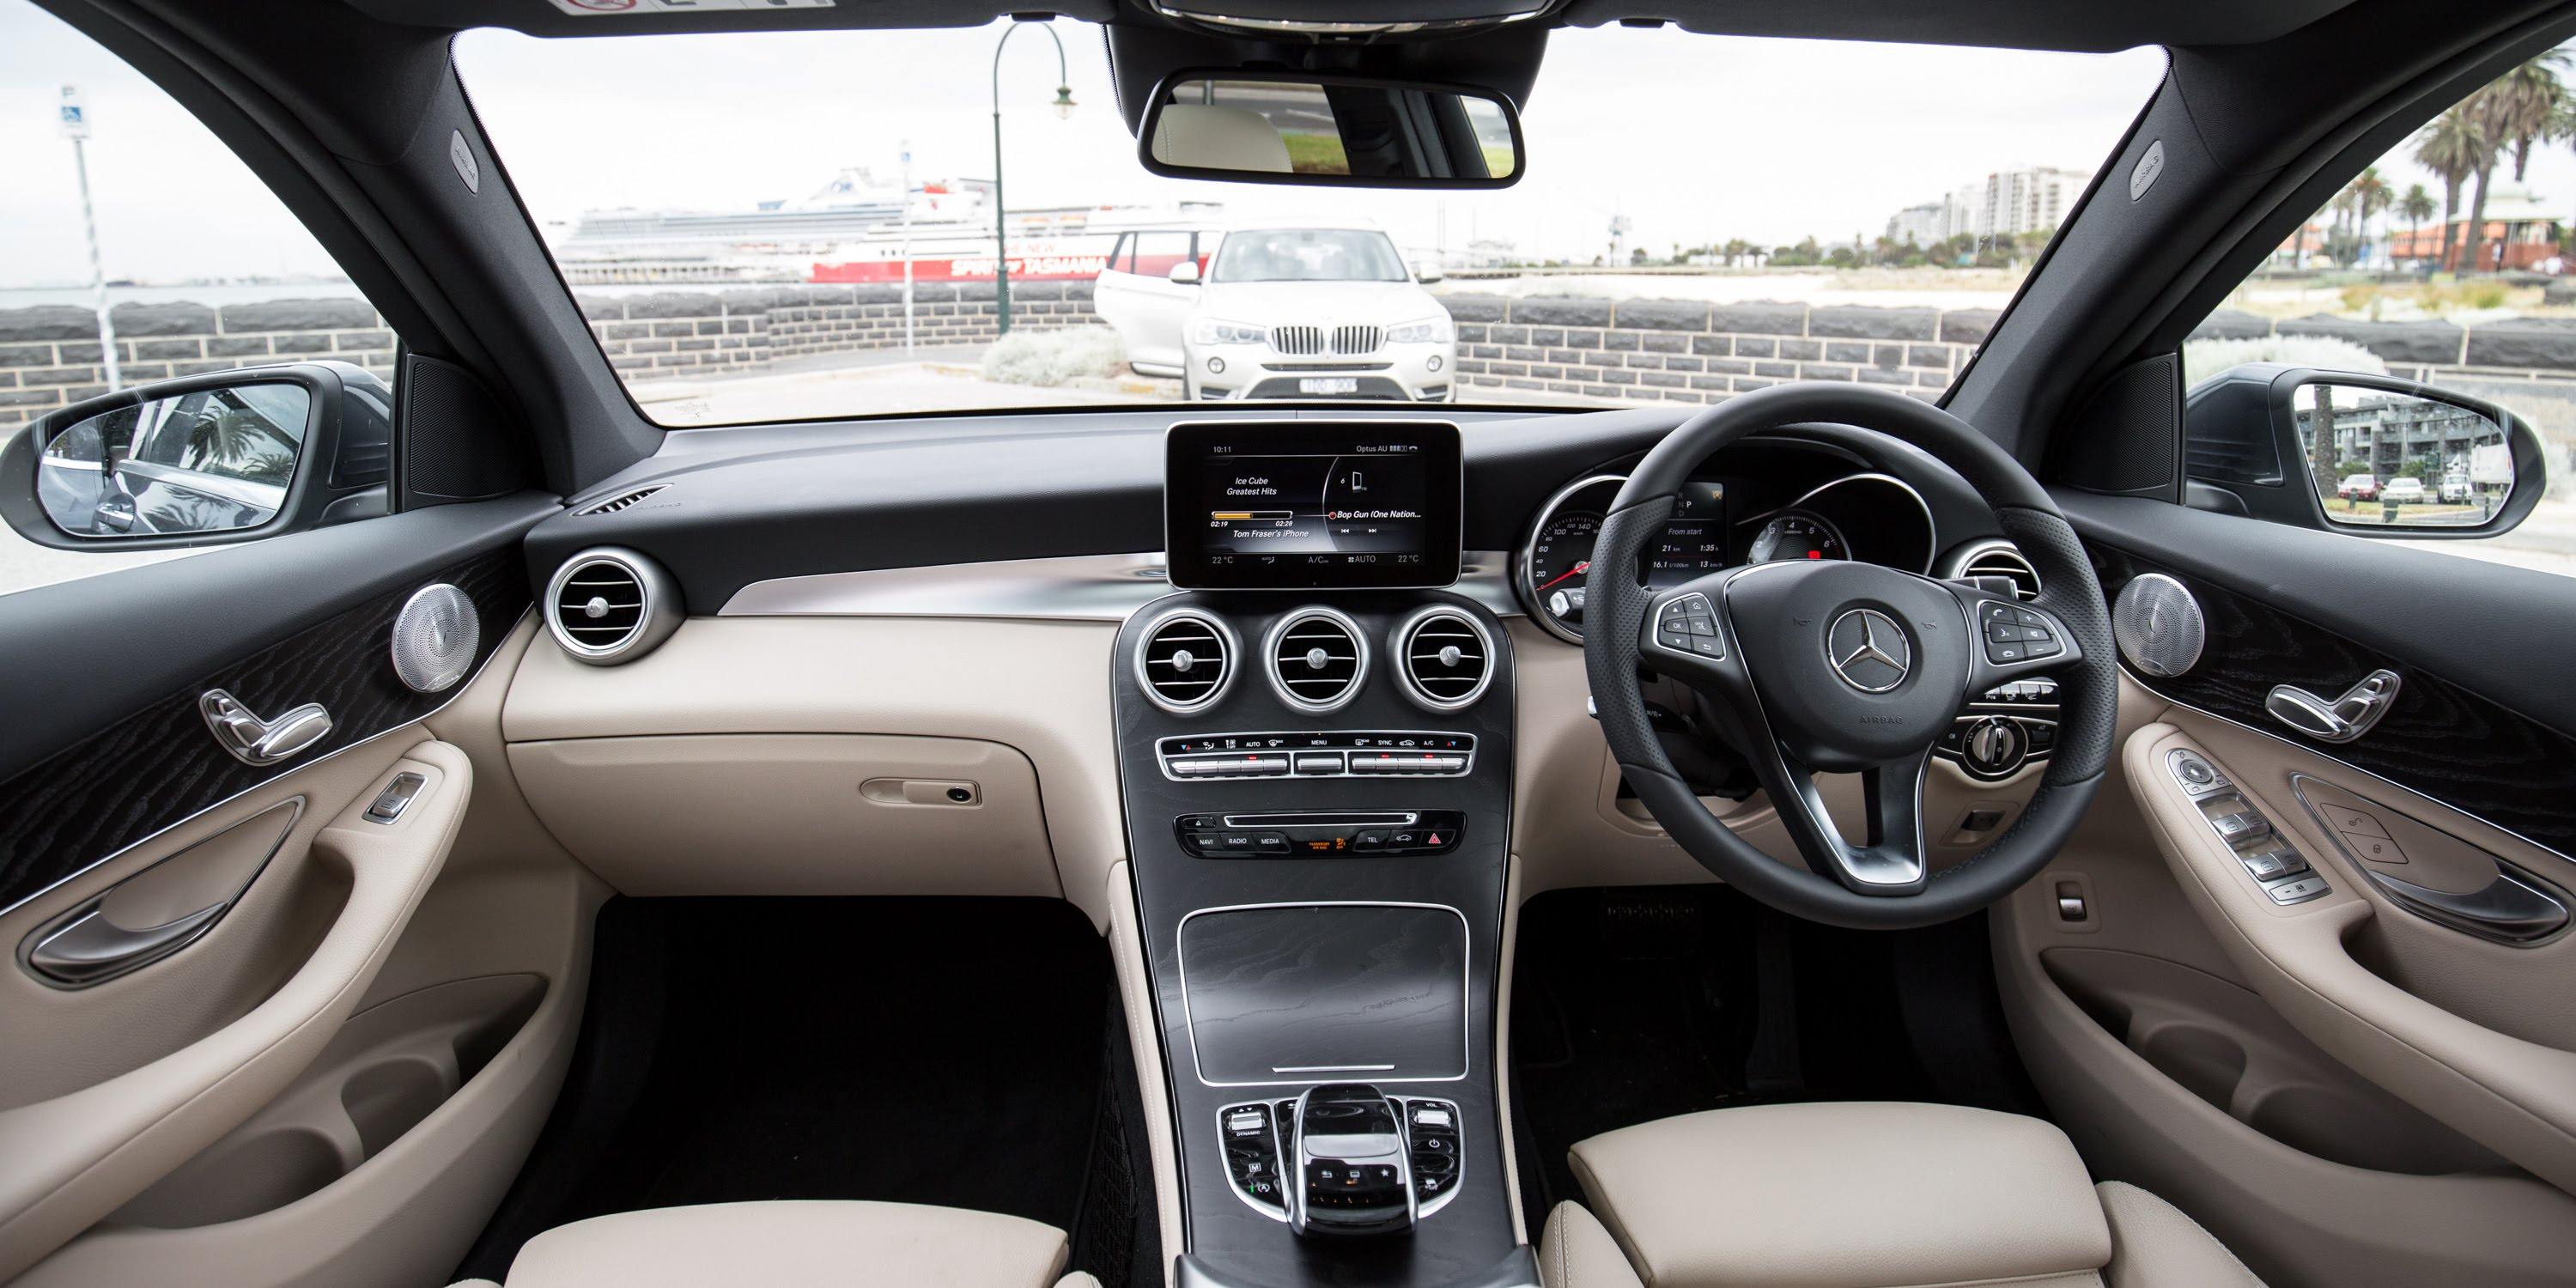 Glc petrol private fleet for Mercedes benz interiors